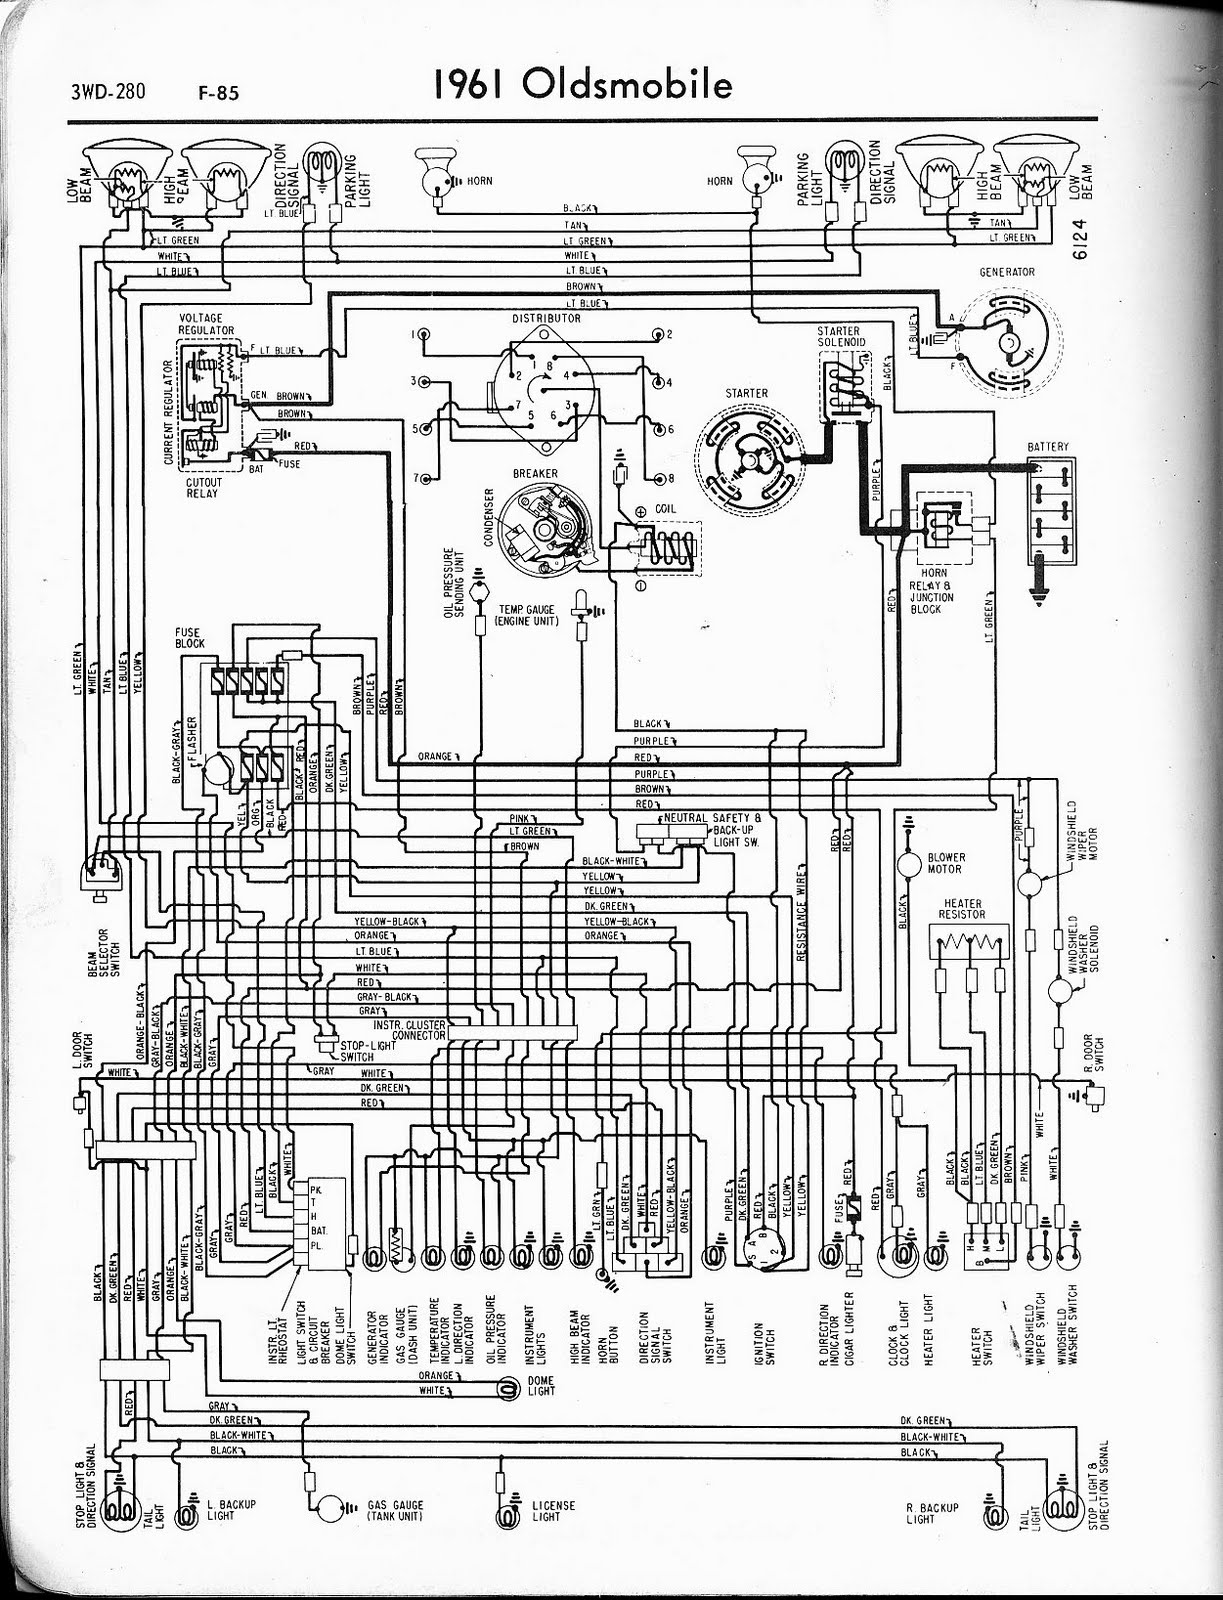 hight resolution of bzerob com technical articles library wiring section 57 chevy tail light wire diagram 40 chevy 55